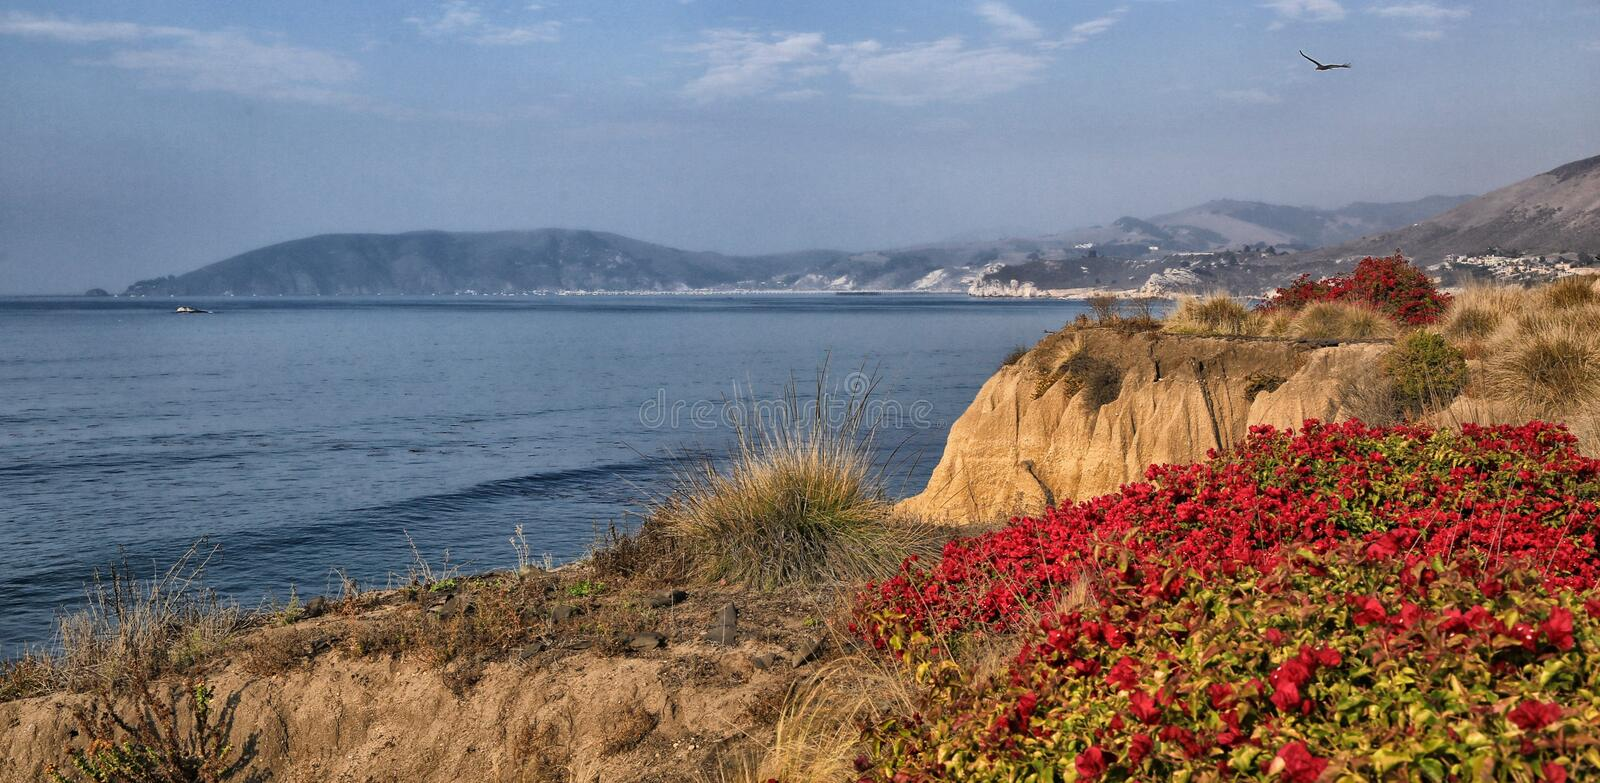 Pismo Beach seaside cliffs. Red flower topped seaside cliffs at Pismo Beach California royalty free stock images